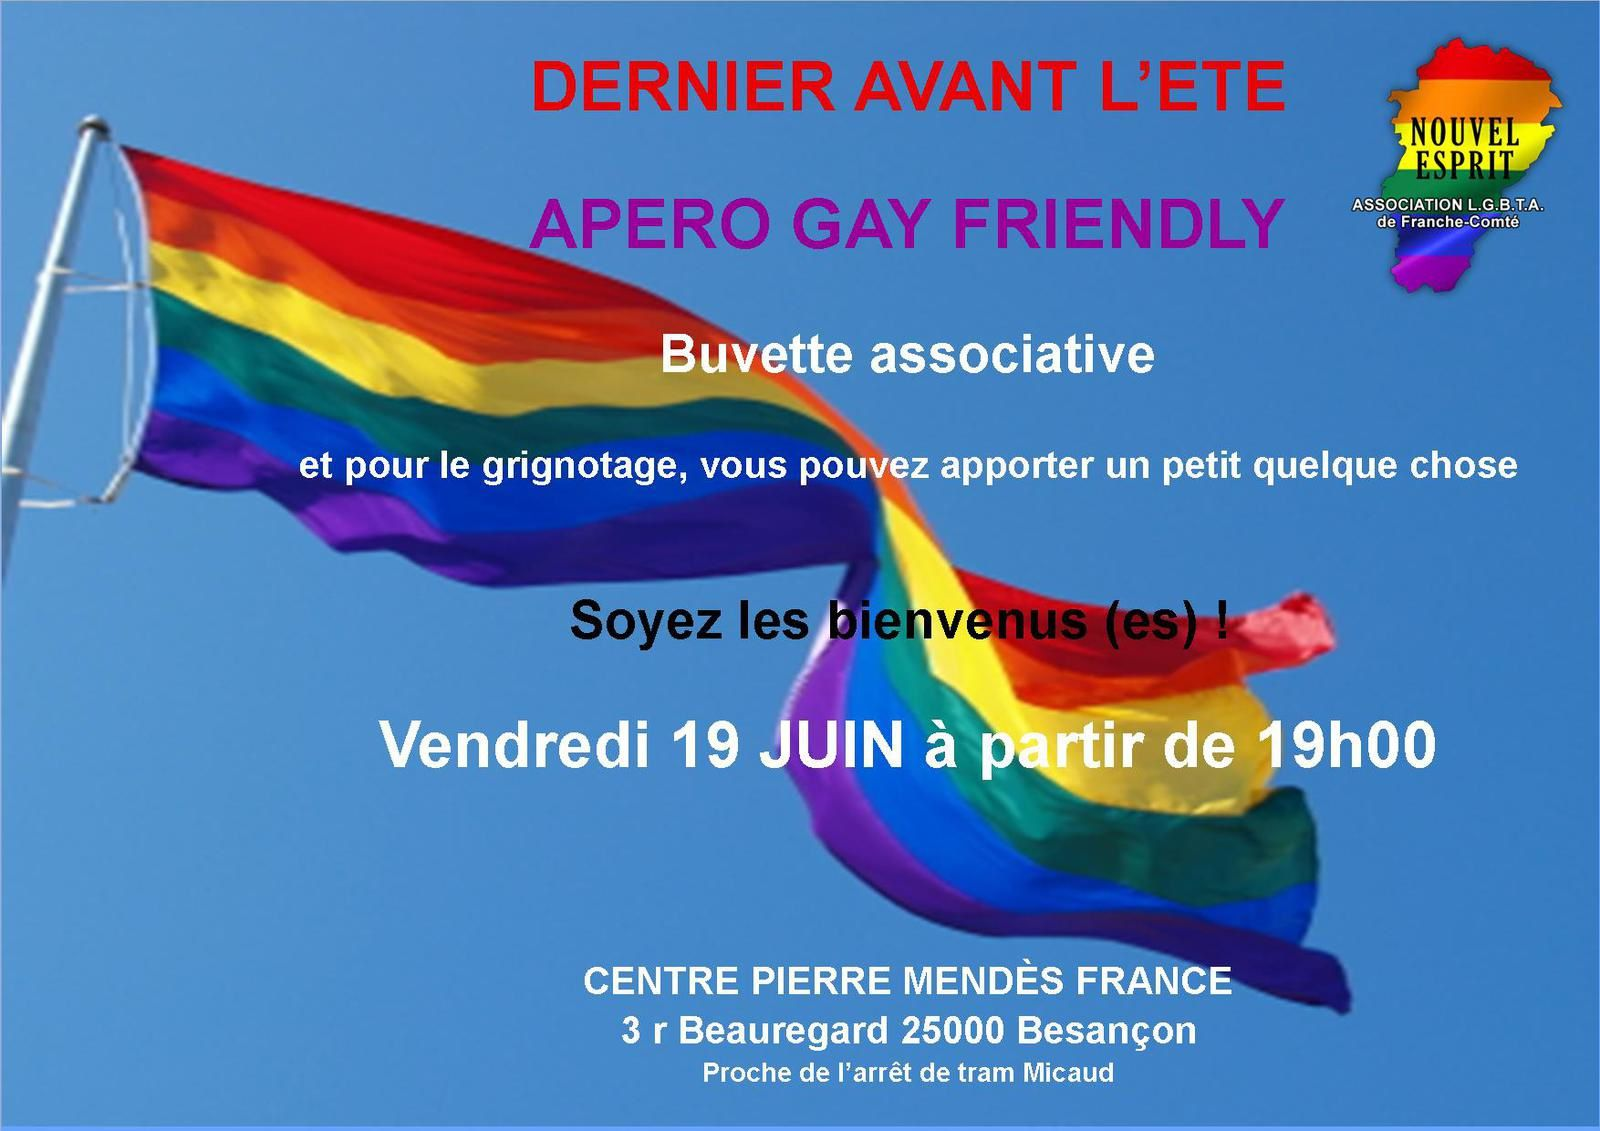 Apéro Gay-Friendly 19 juin 2015